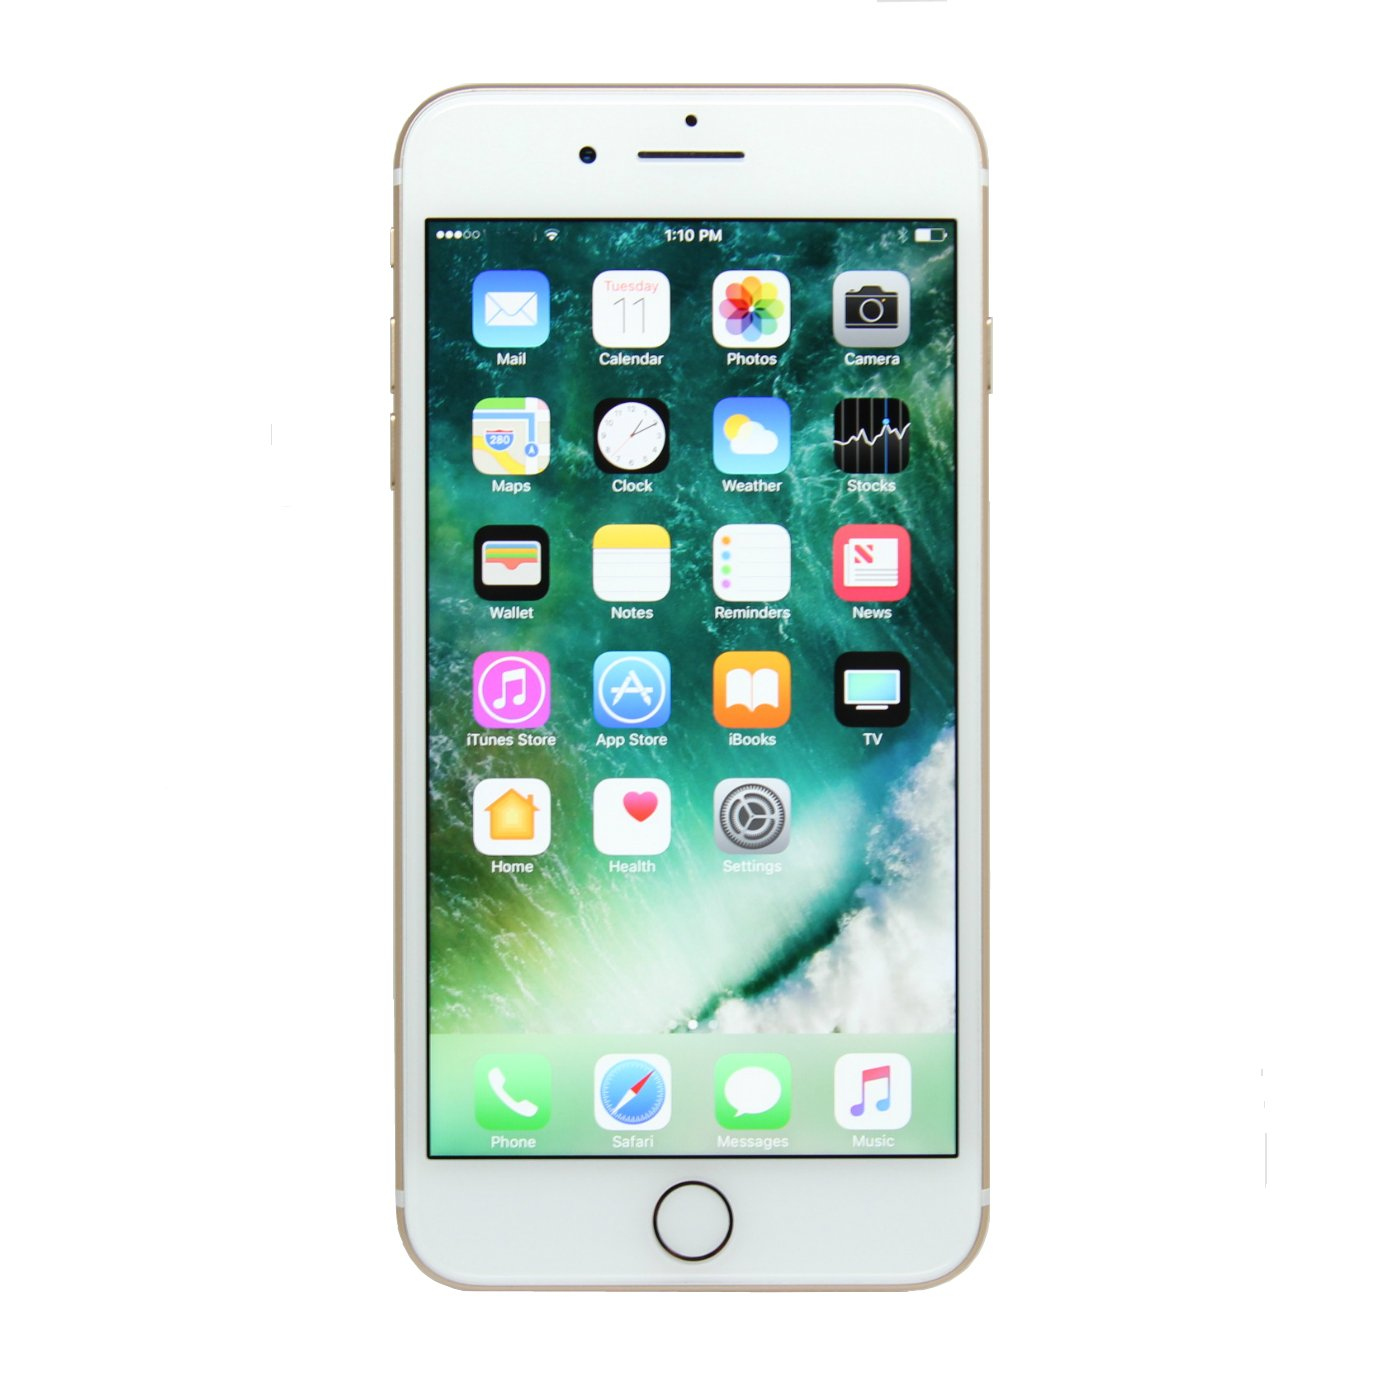 Apple iPhone 7 Plus 128GB Unlocked GSM Quad-Core Phone - Gold (Renewed)